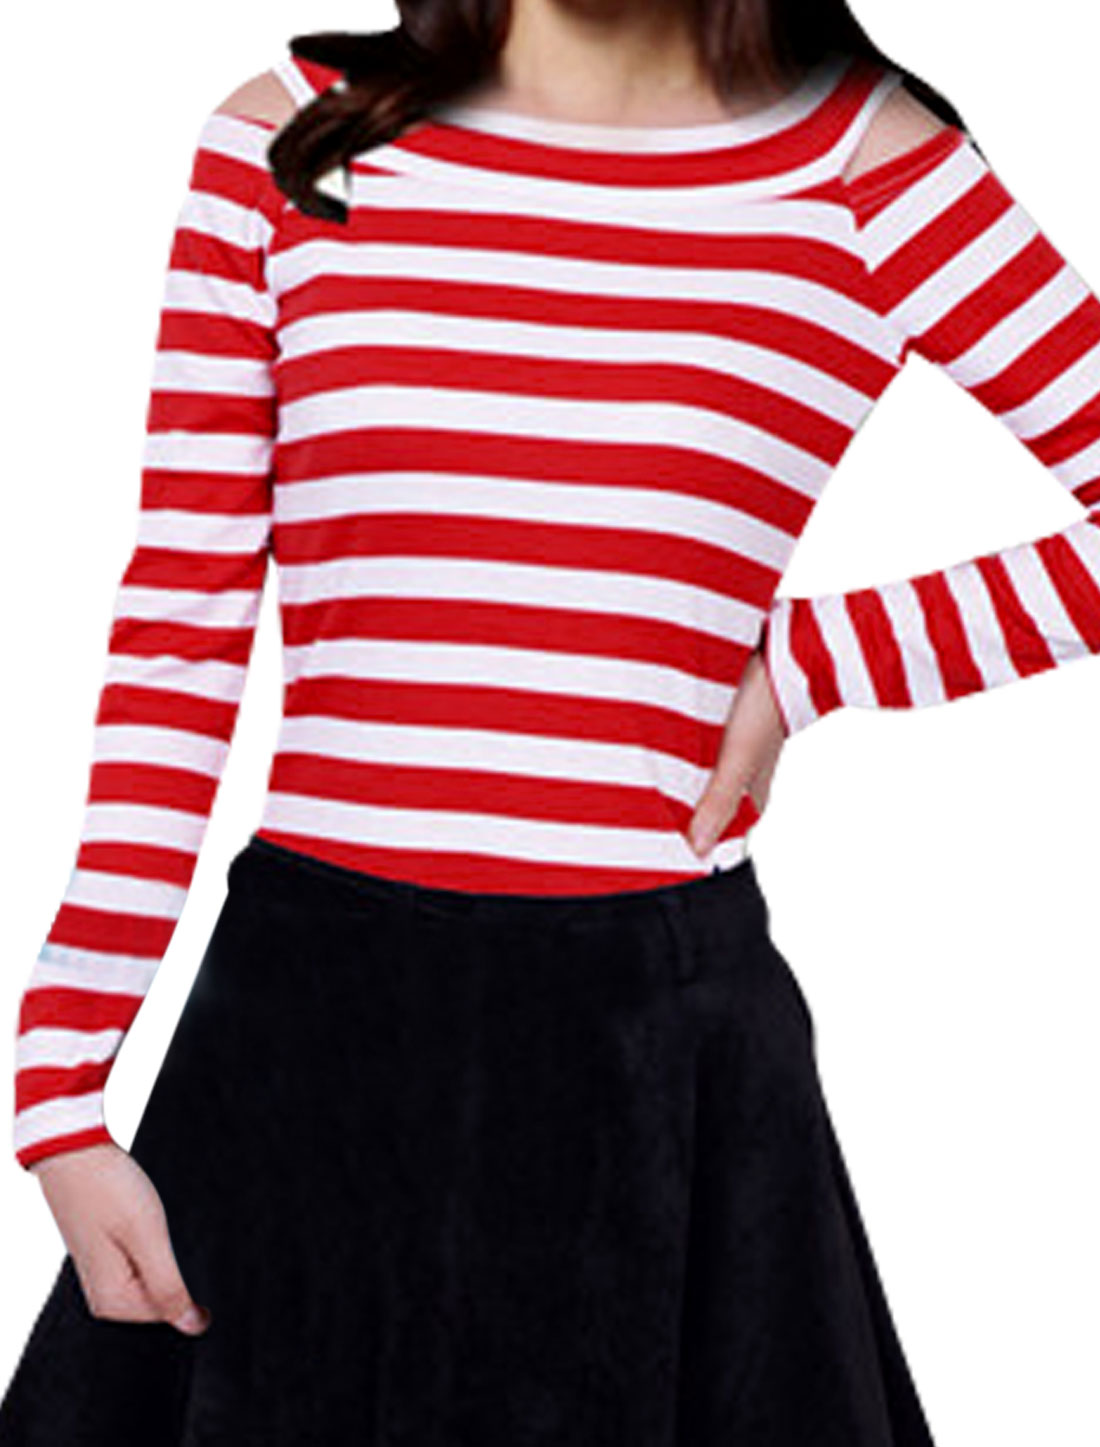 Red White Two-Tone Striped Cutout Shoulder Casual Shirt for Lady XS